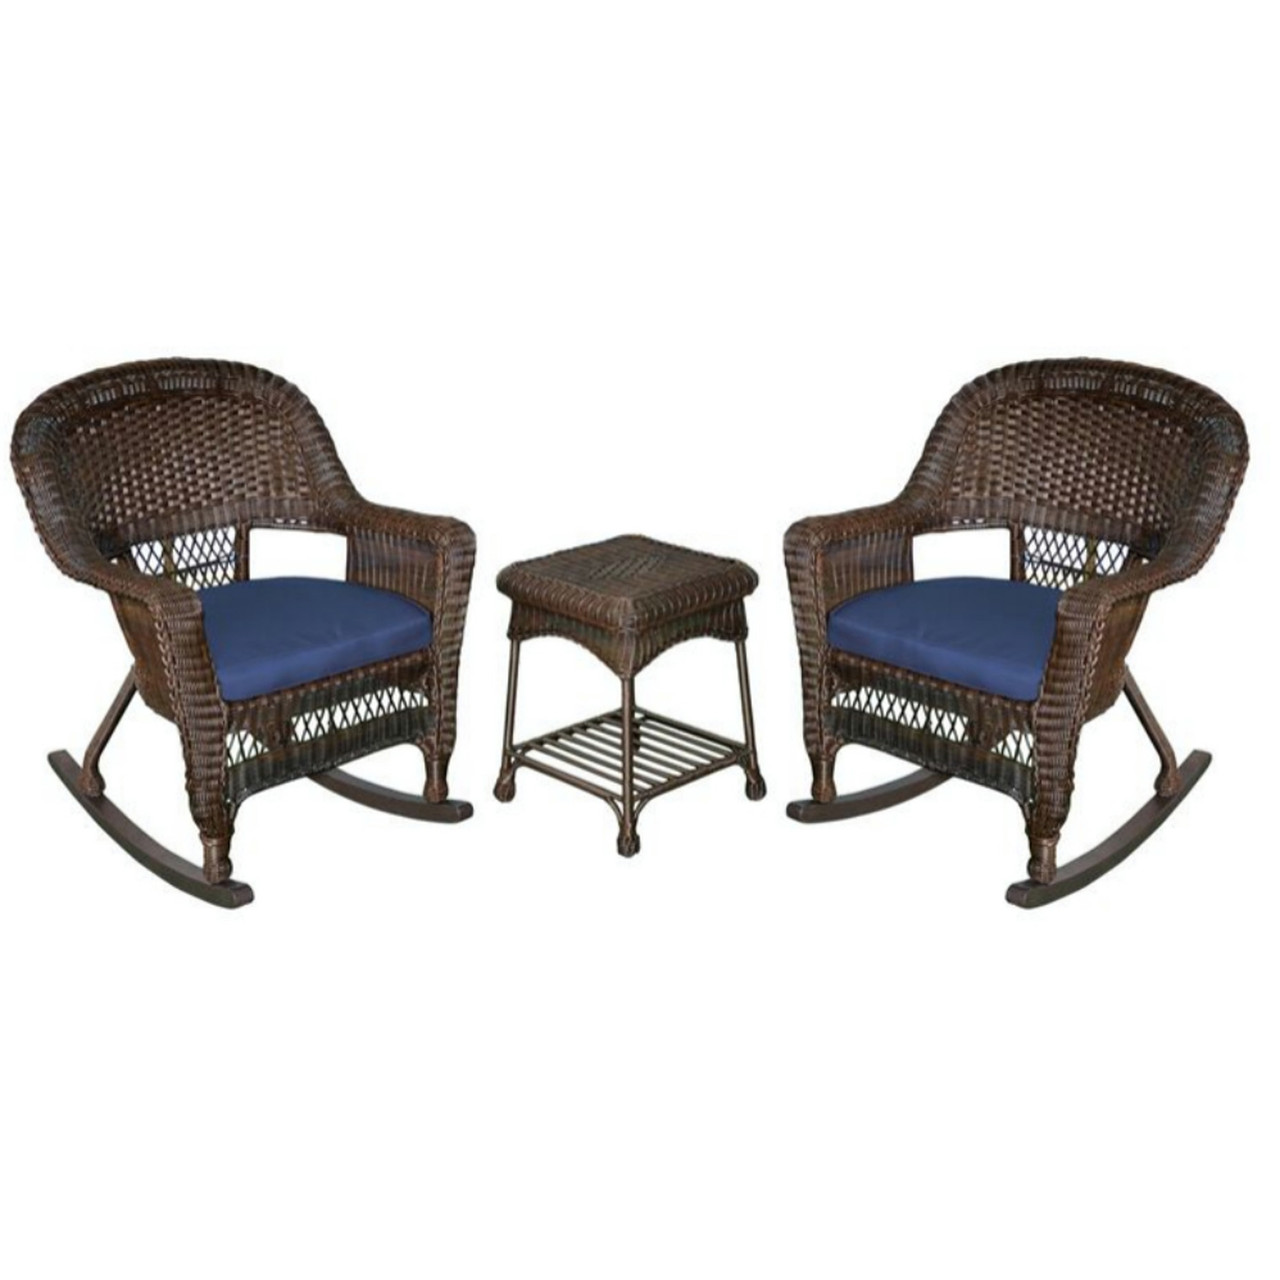 Patio Rocker Chairs 3 Piece Espresso Wicker Patio Rocker Chairs Table Furniture Set Blue Cushions 31556120